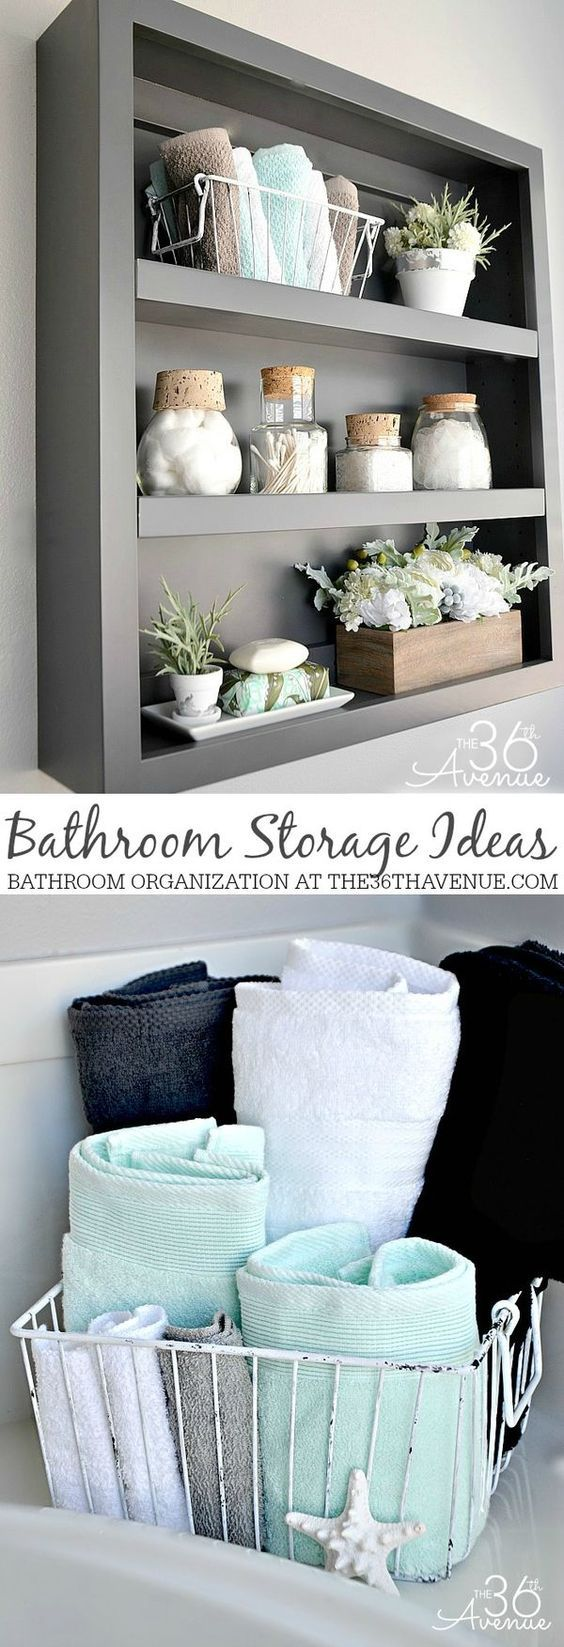 Spa Bathroom Decorating Ideas Pictures bathroom storage ideas | cleaning bathrooms, bathroom storage and